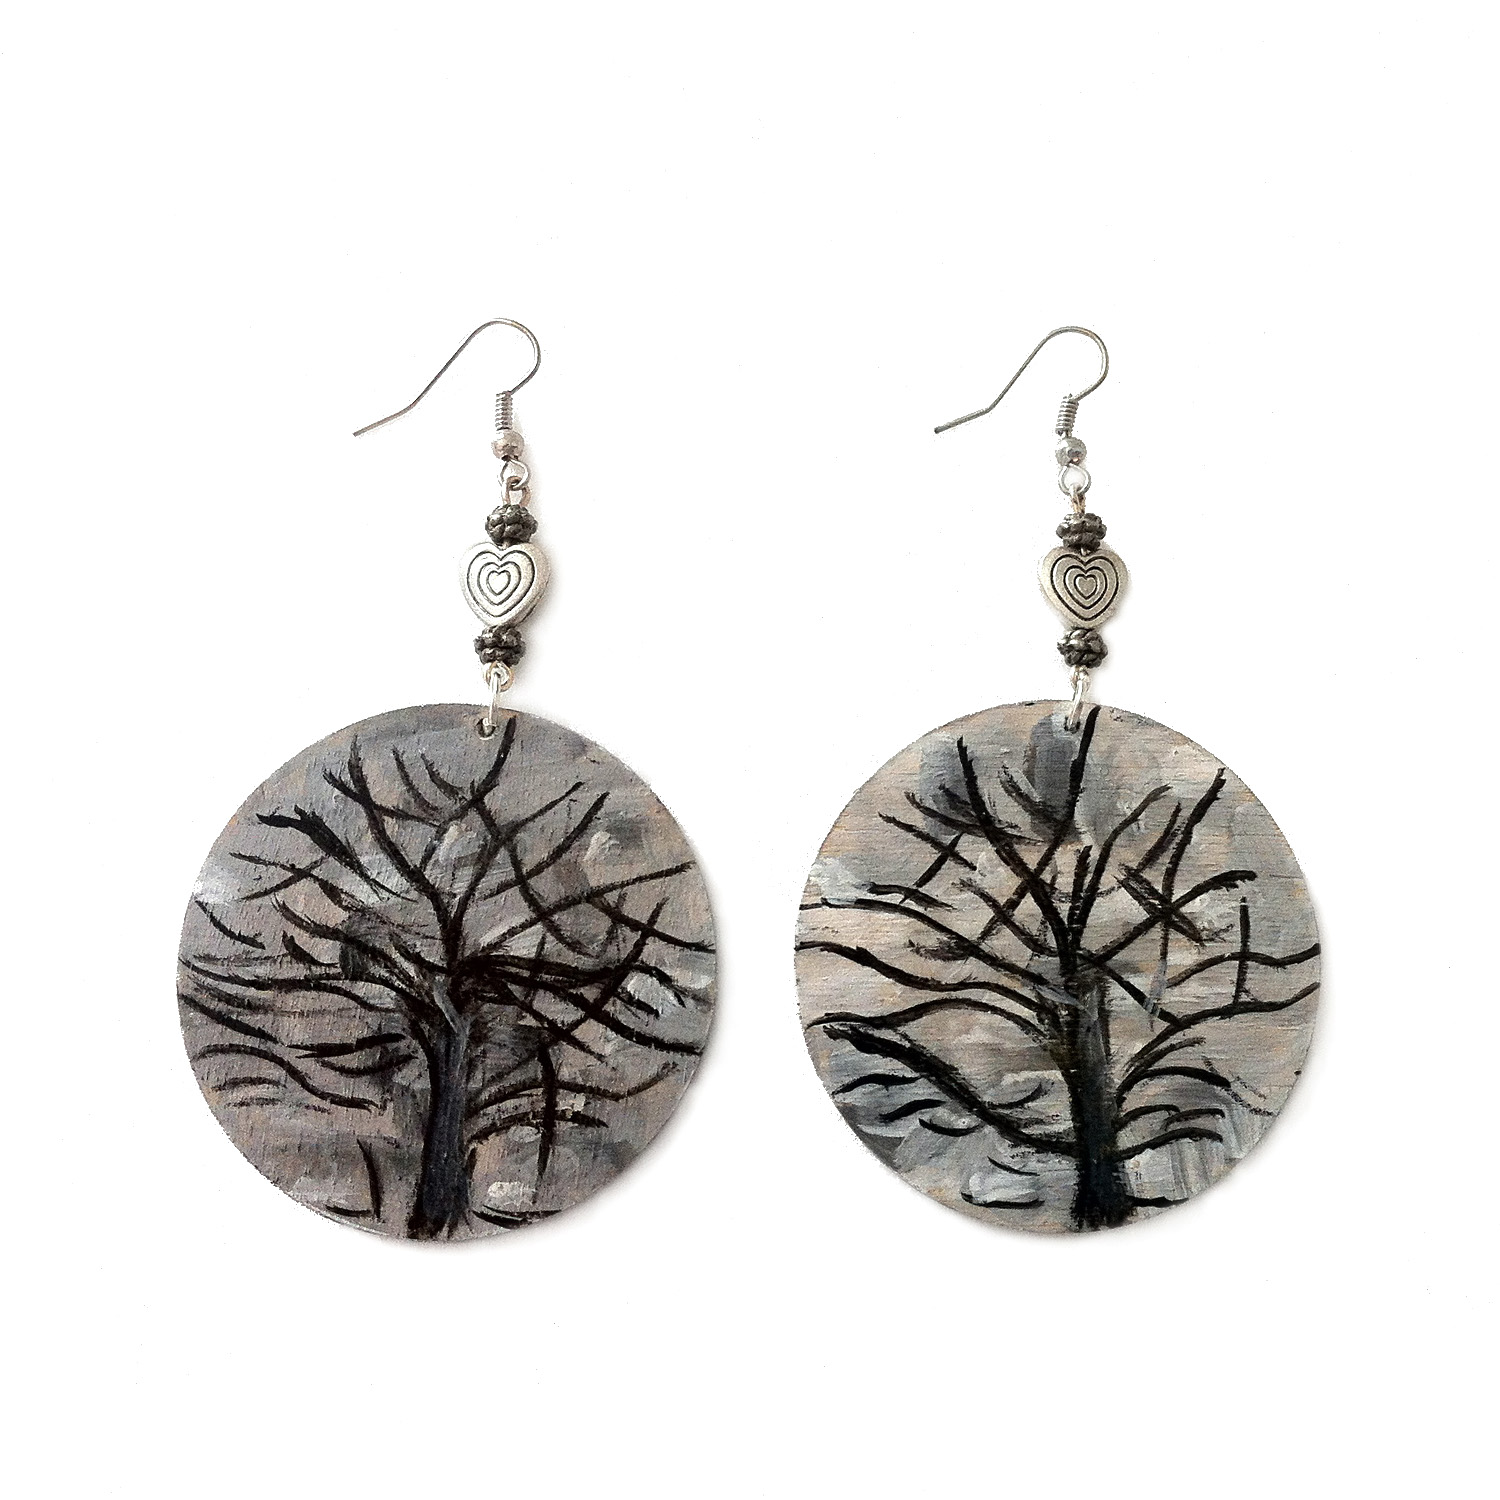 Hand-painted earrings - The silver tree by Mondrian